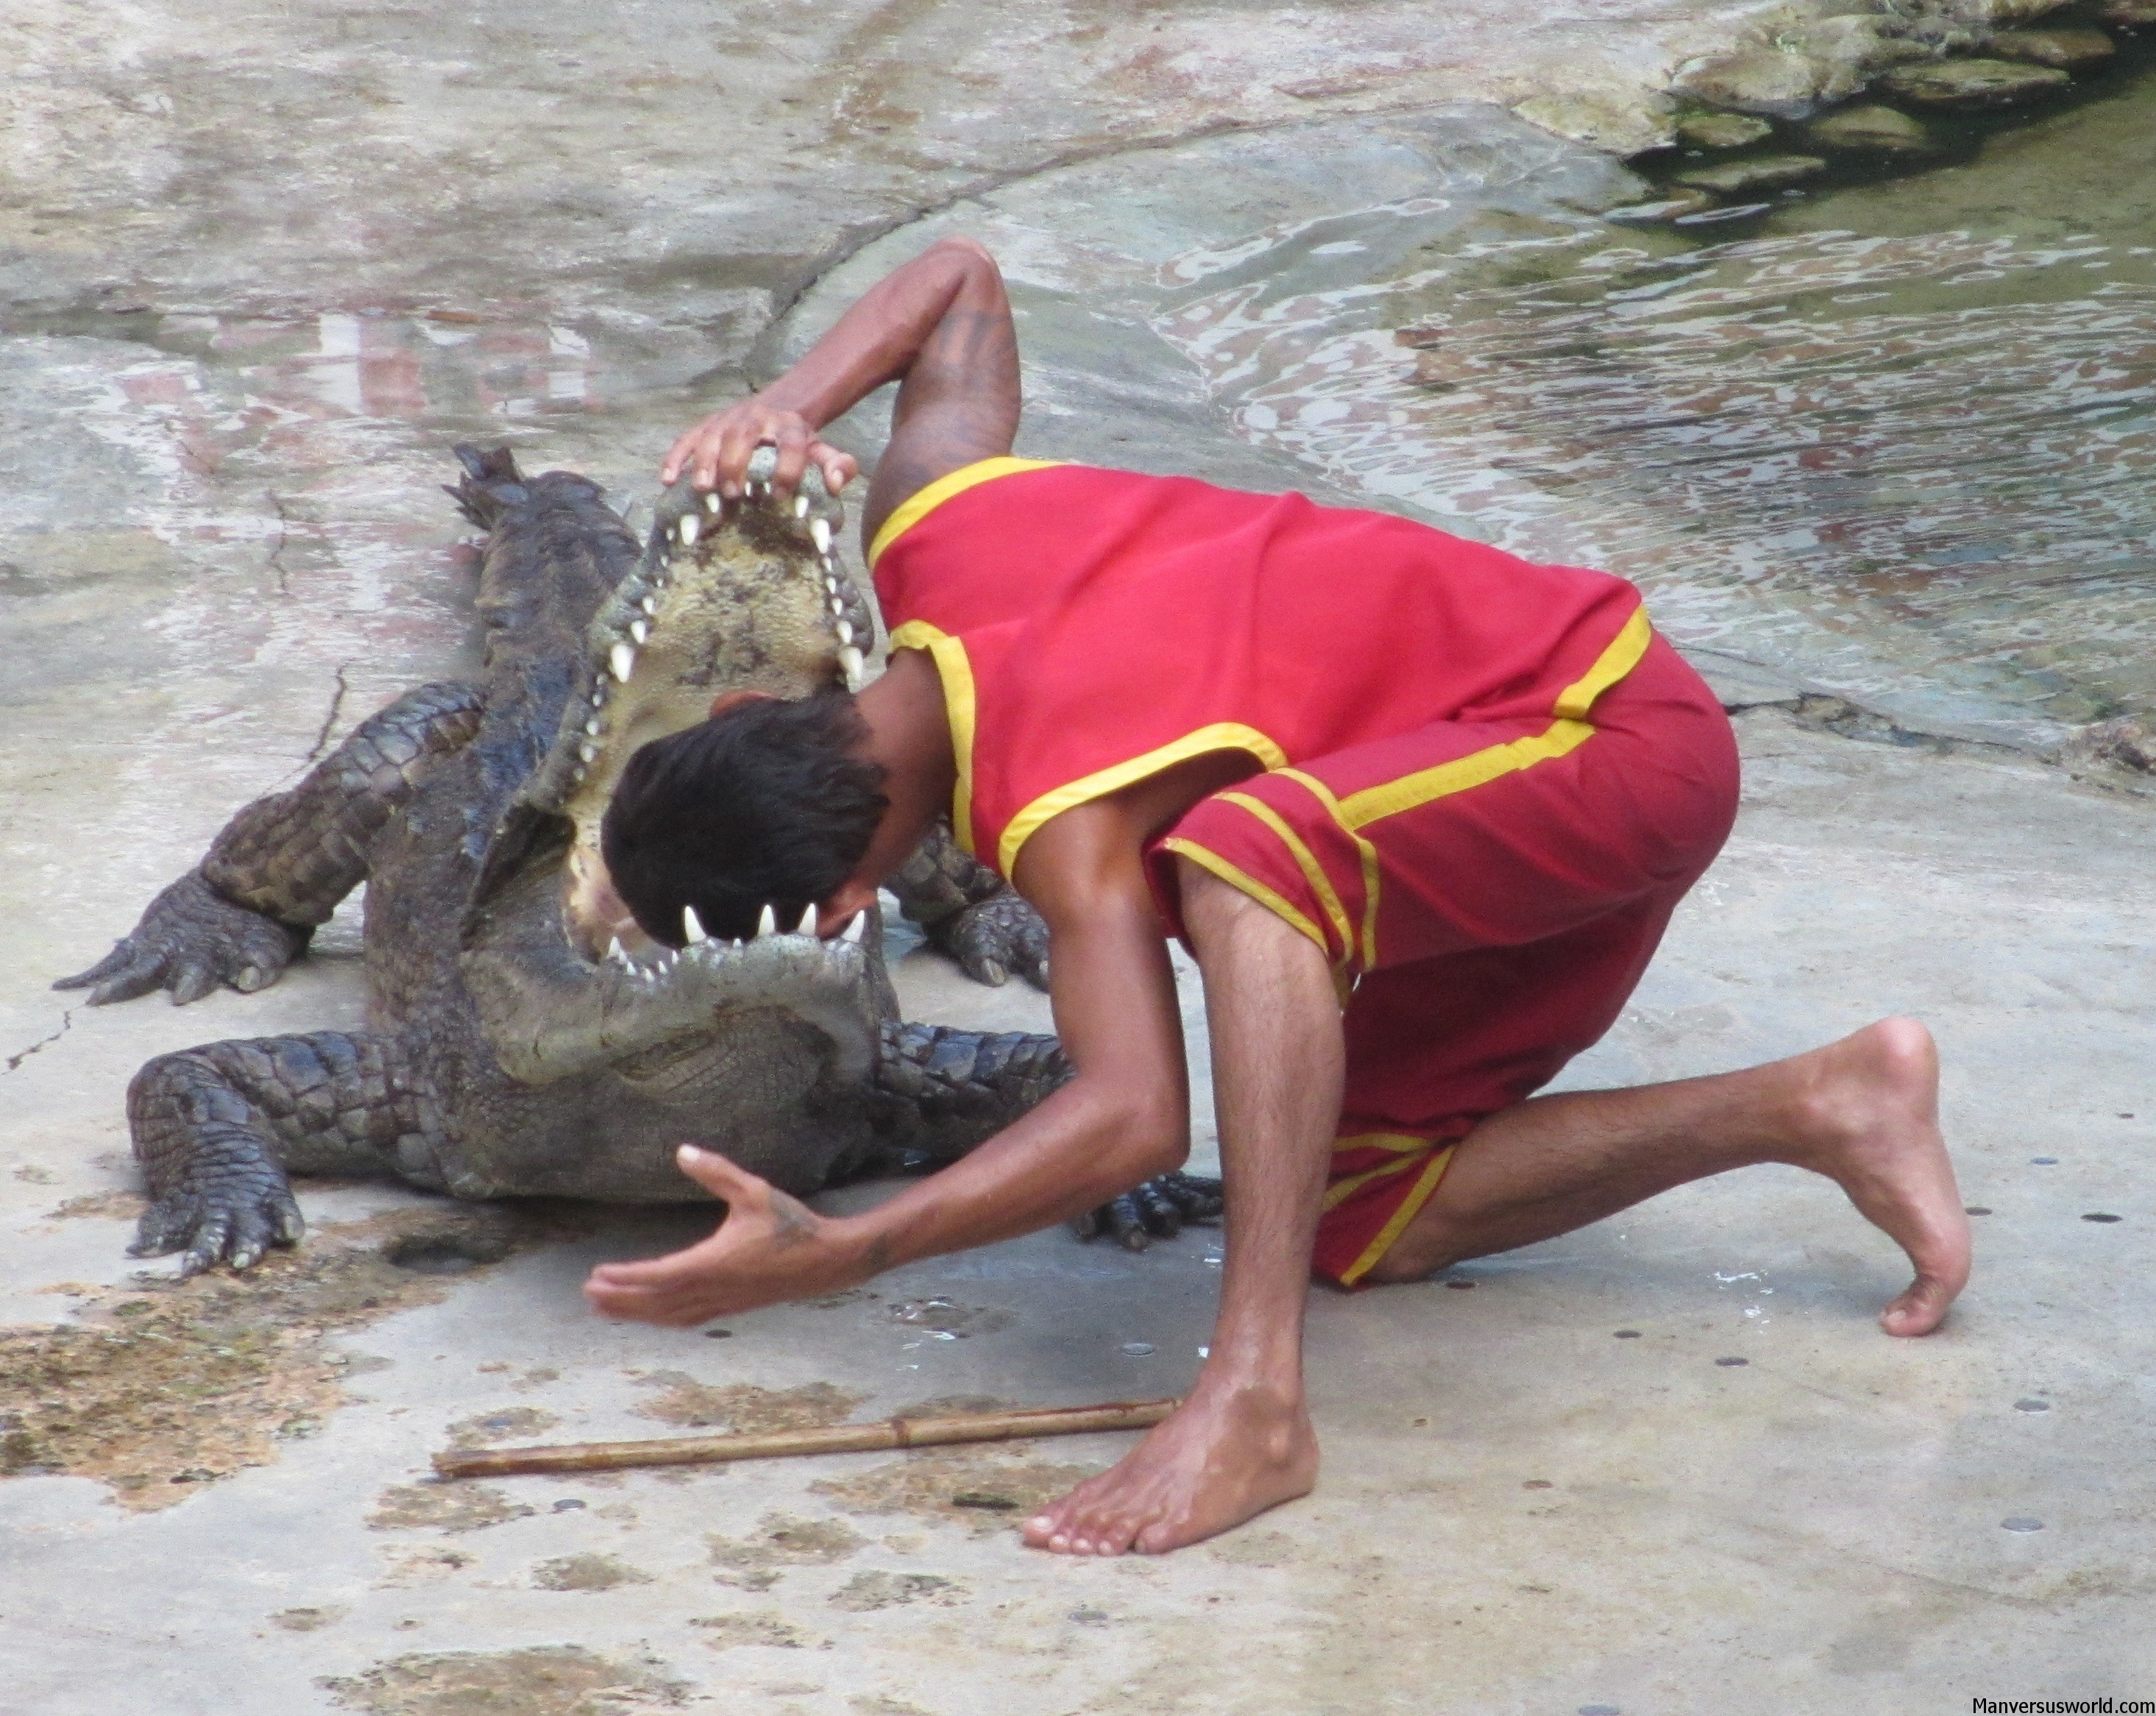 A man puts his head inside a croc's gaping mouth.